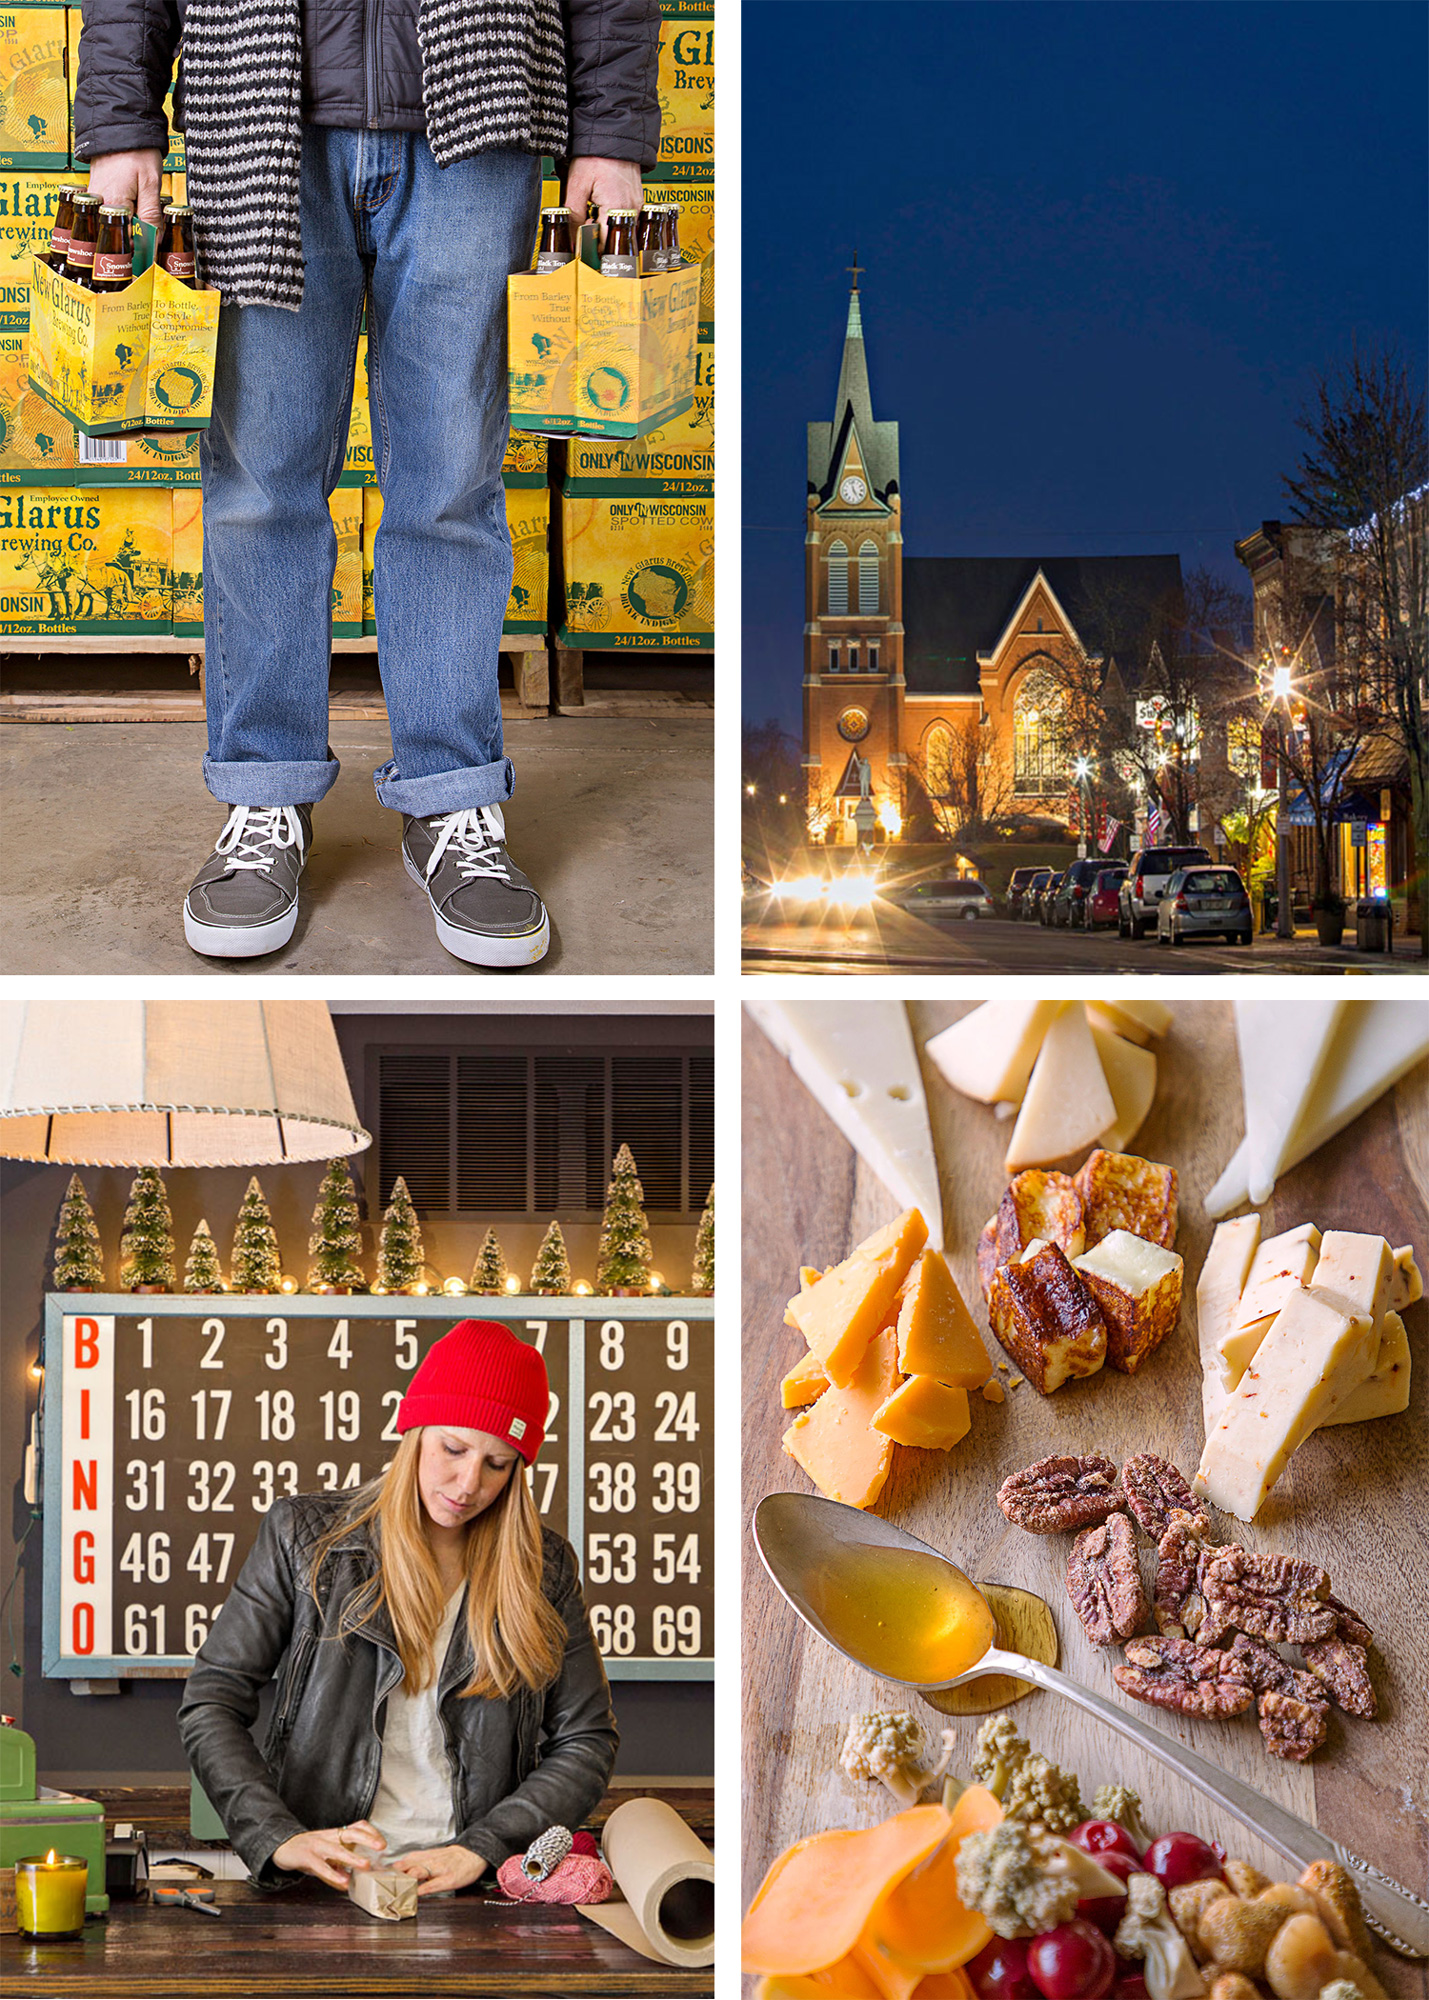 New Glarus has 2,100 residents, but New Glarus Brewing averages twice that in visitors weekly. The Swiss United Church of Christ erected this downtown landmark in 1900. Cow and Quince serves farm-to-table fare. Hutch and Hide sells hip gifts with a Midwest focus.